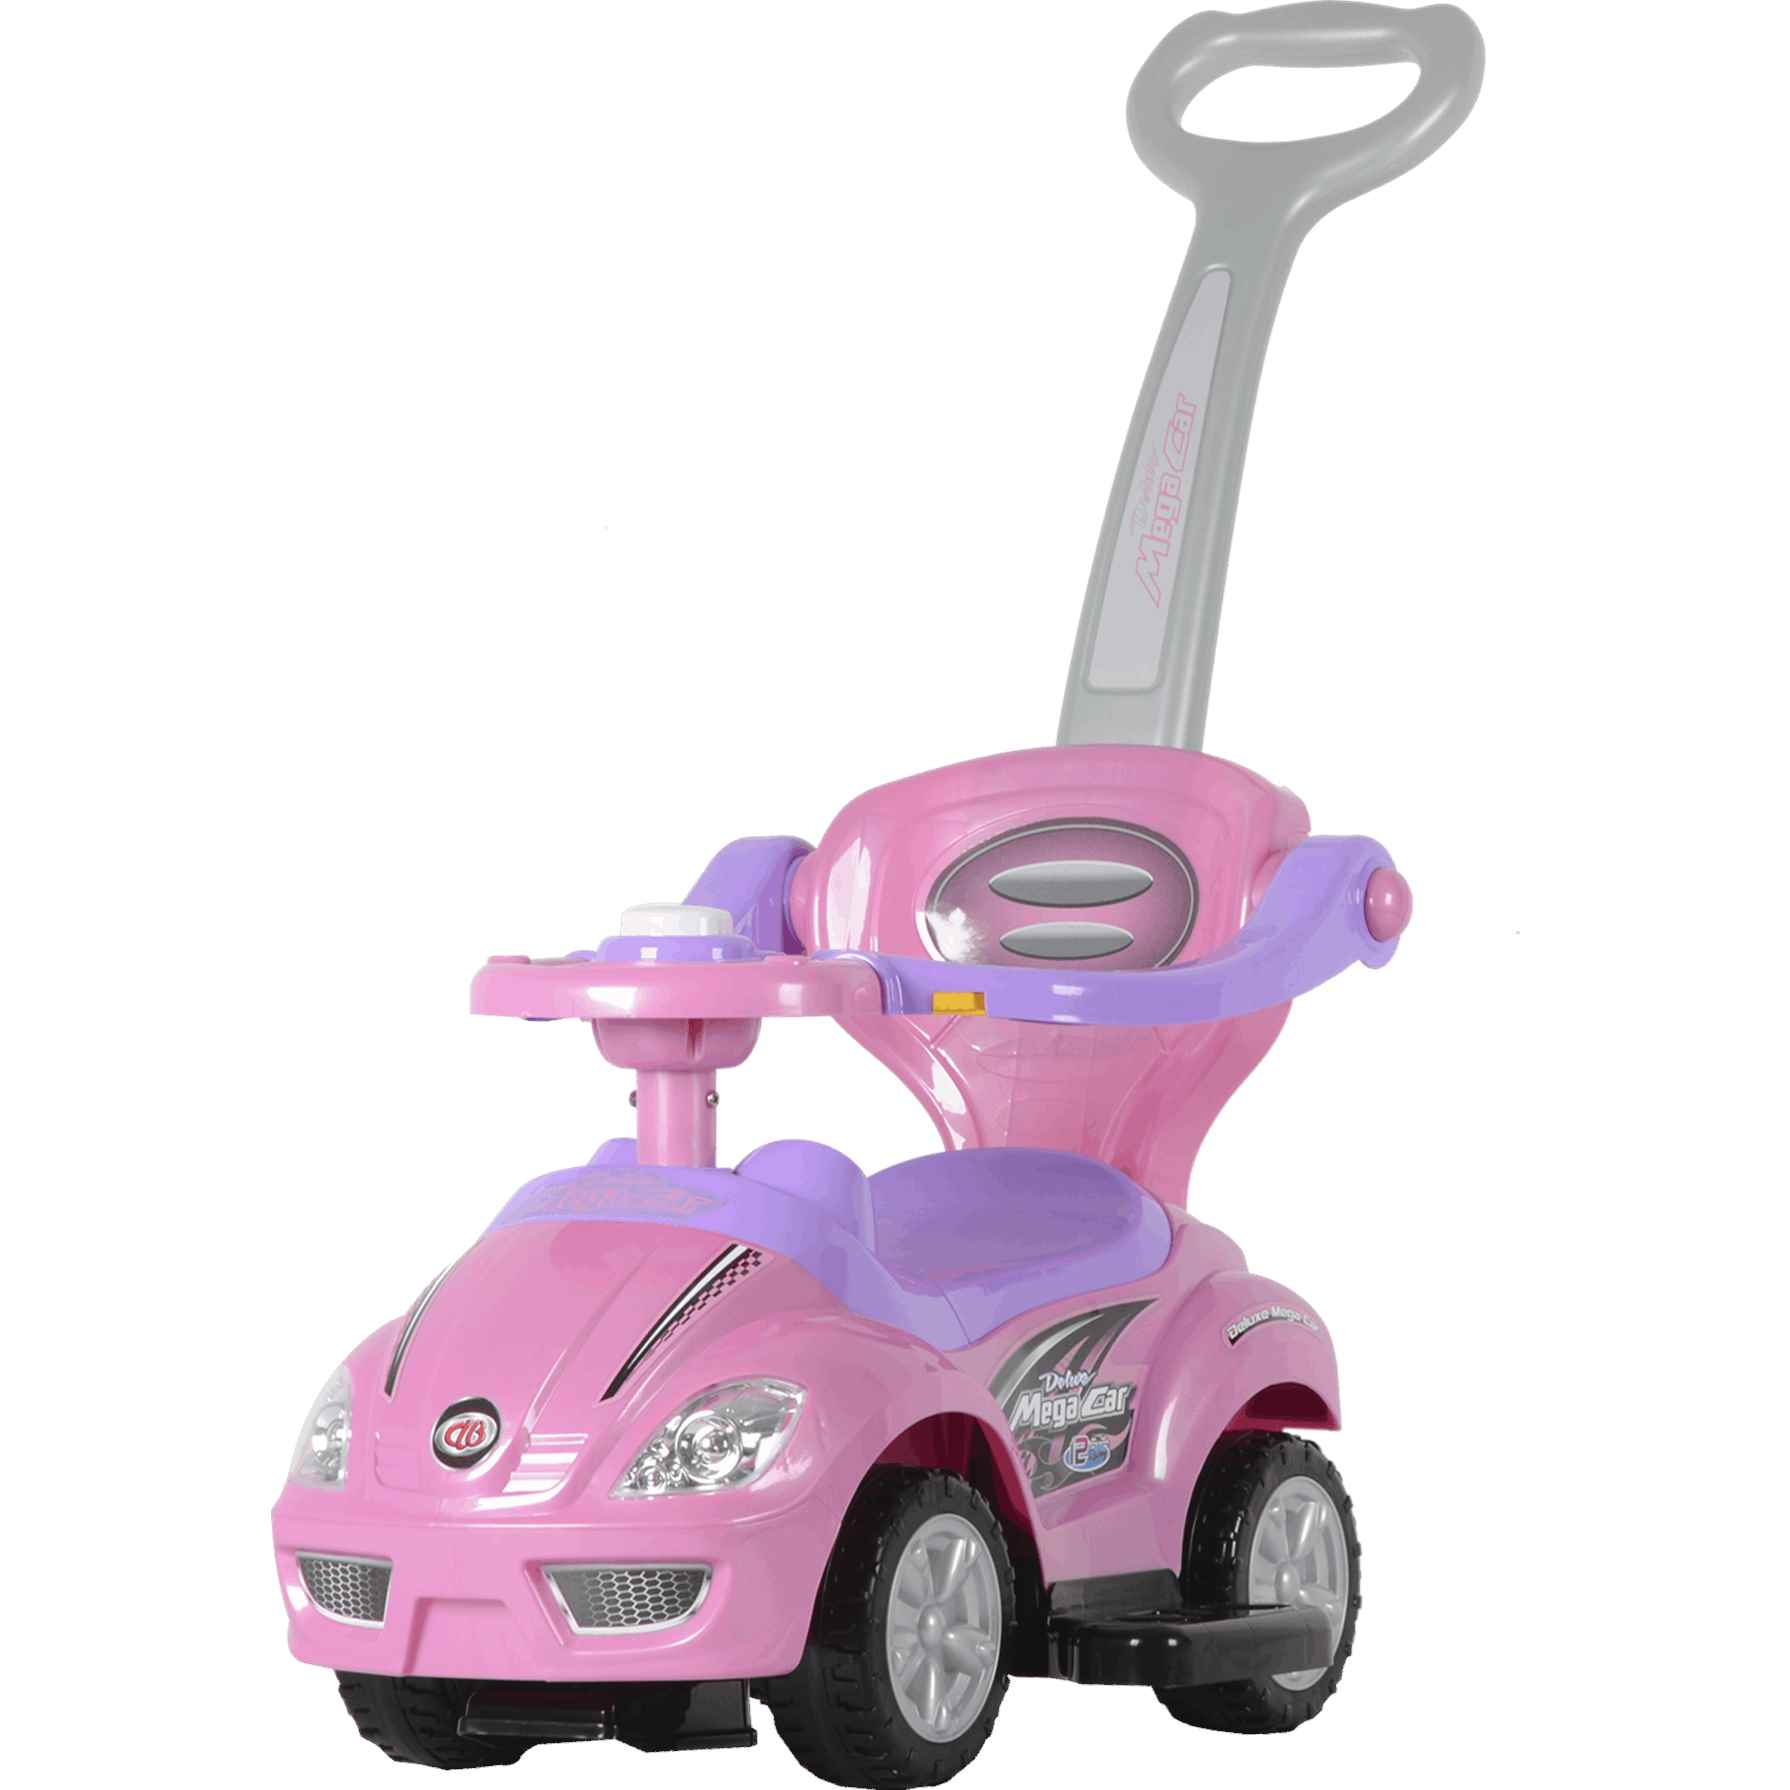 Infant Planet Correpasillos ¡3 en 1! Convertible Rosa